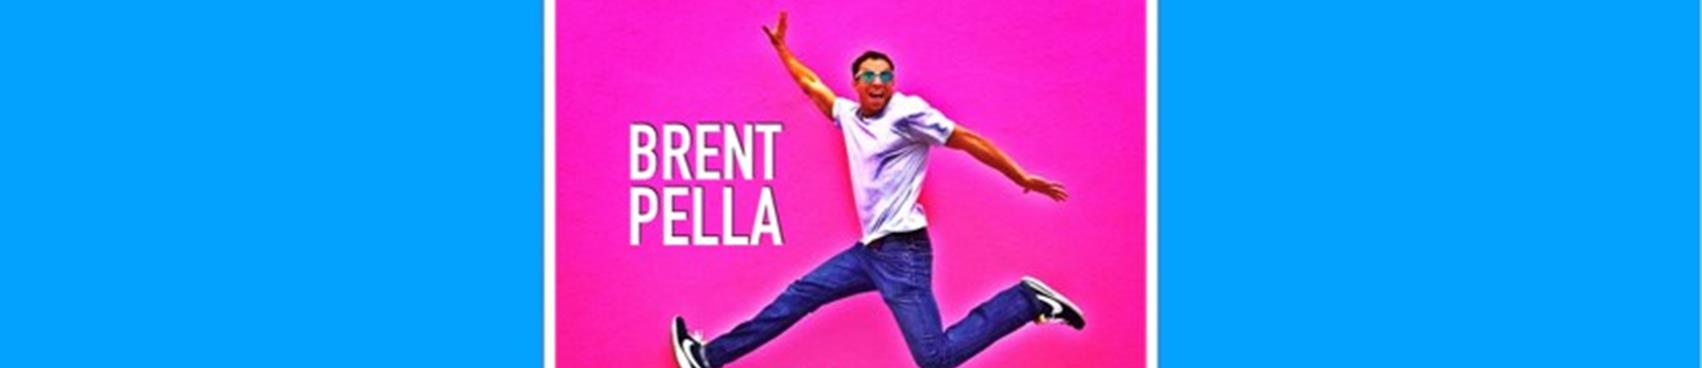 Purchase Tickets to Comedian Brent Pella at The Laugh Cellar on CellarPass